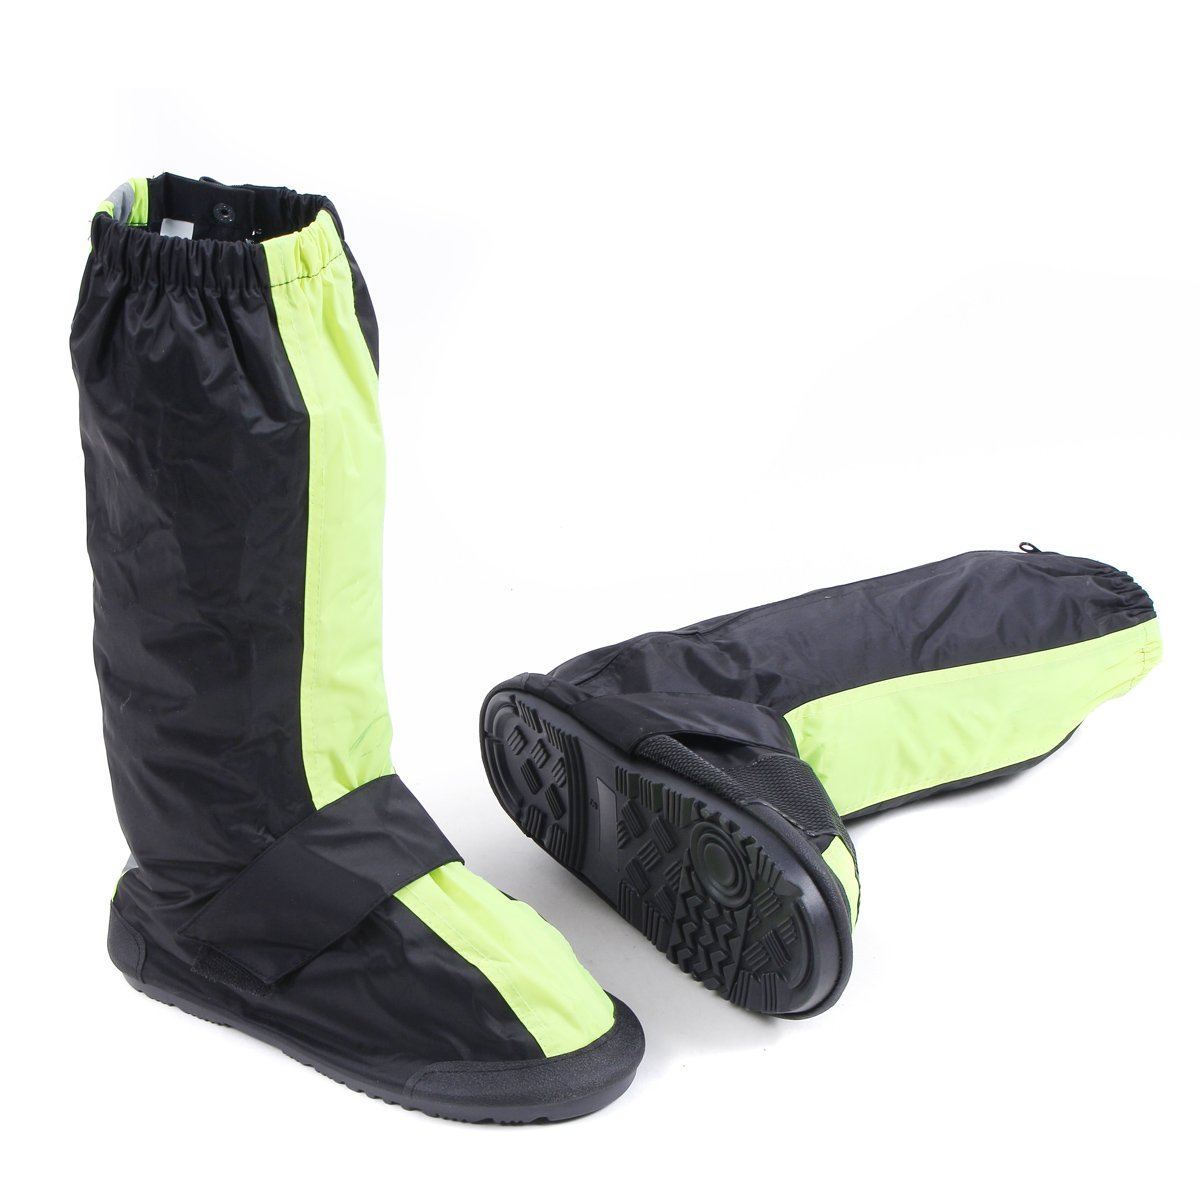 CHCYCLE Motorcycle Yellow Rain Boot Covers Waterproof with Shift Pad Protector (Large)